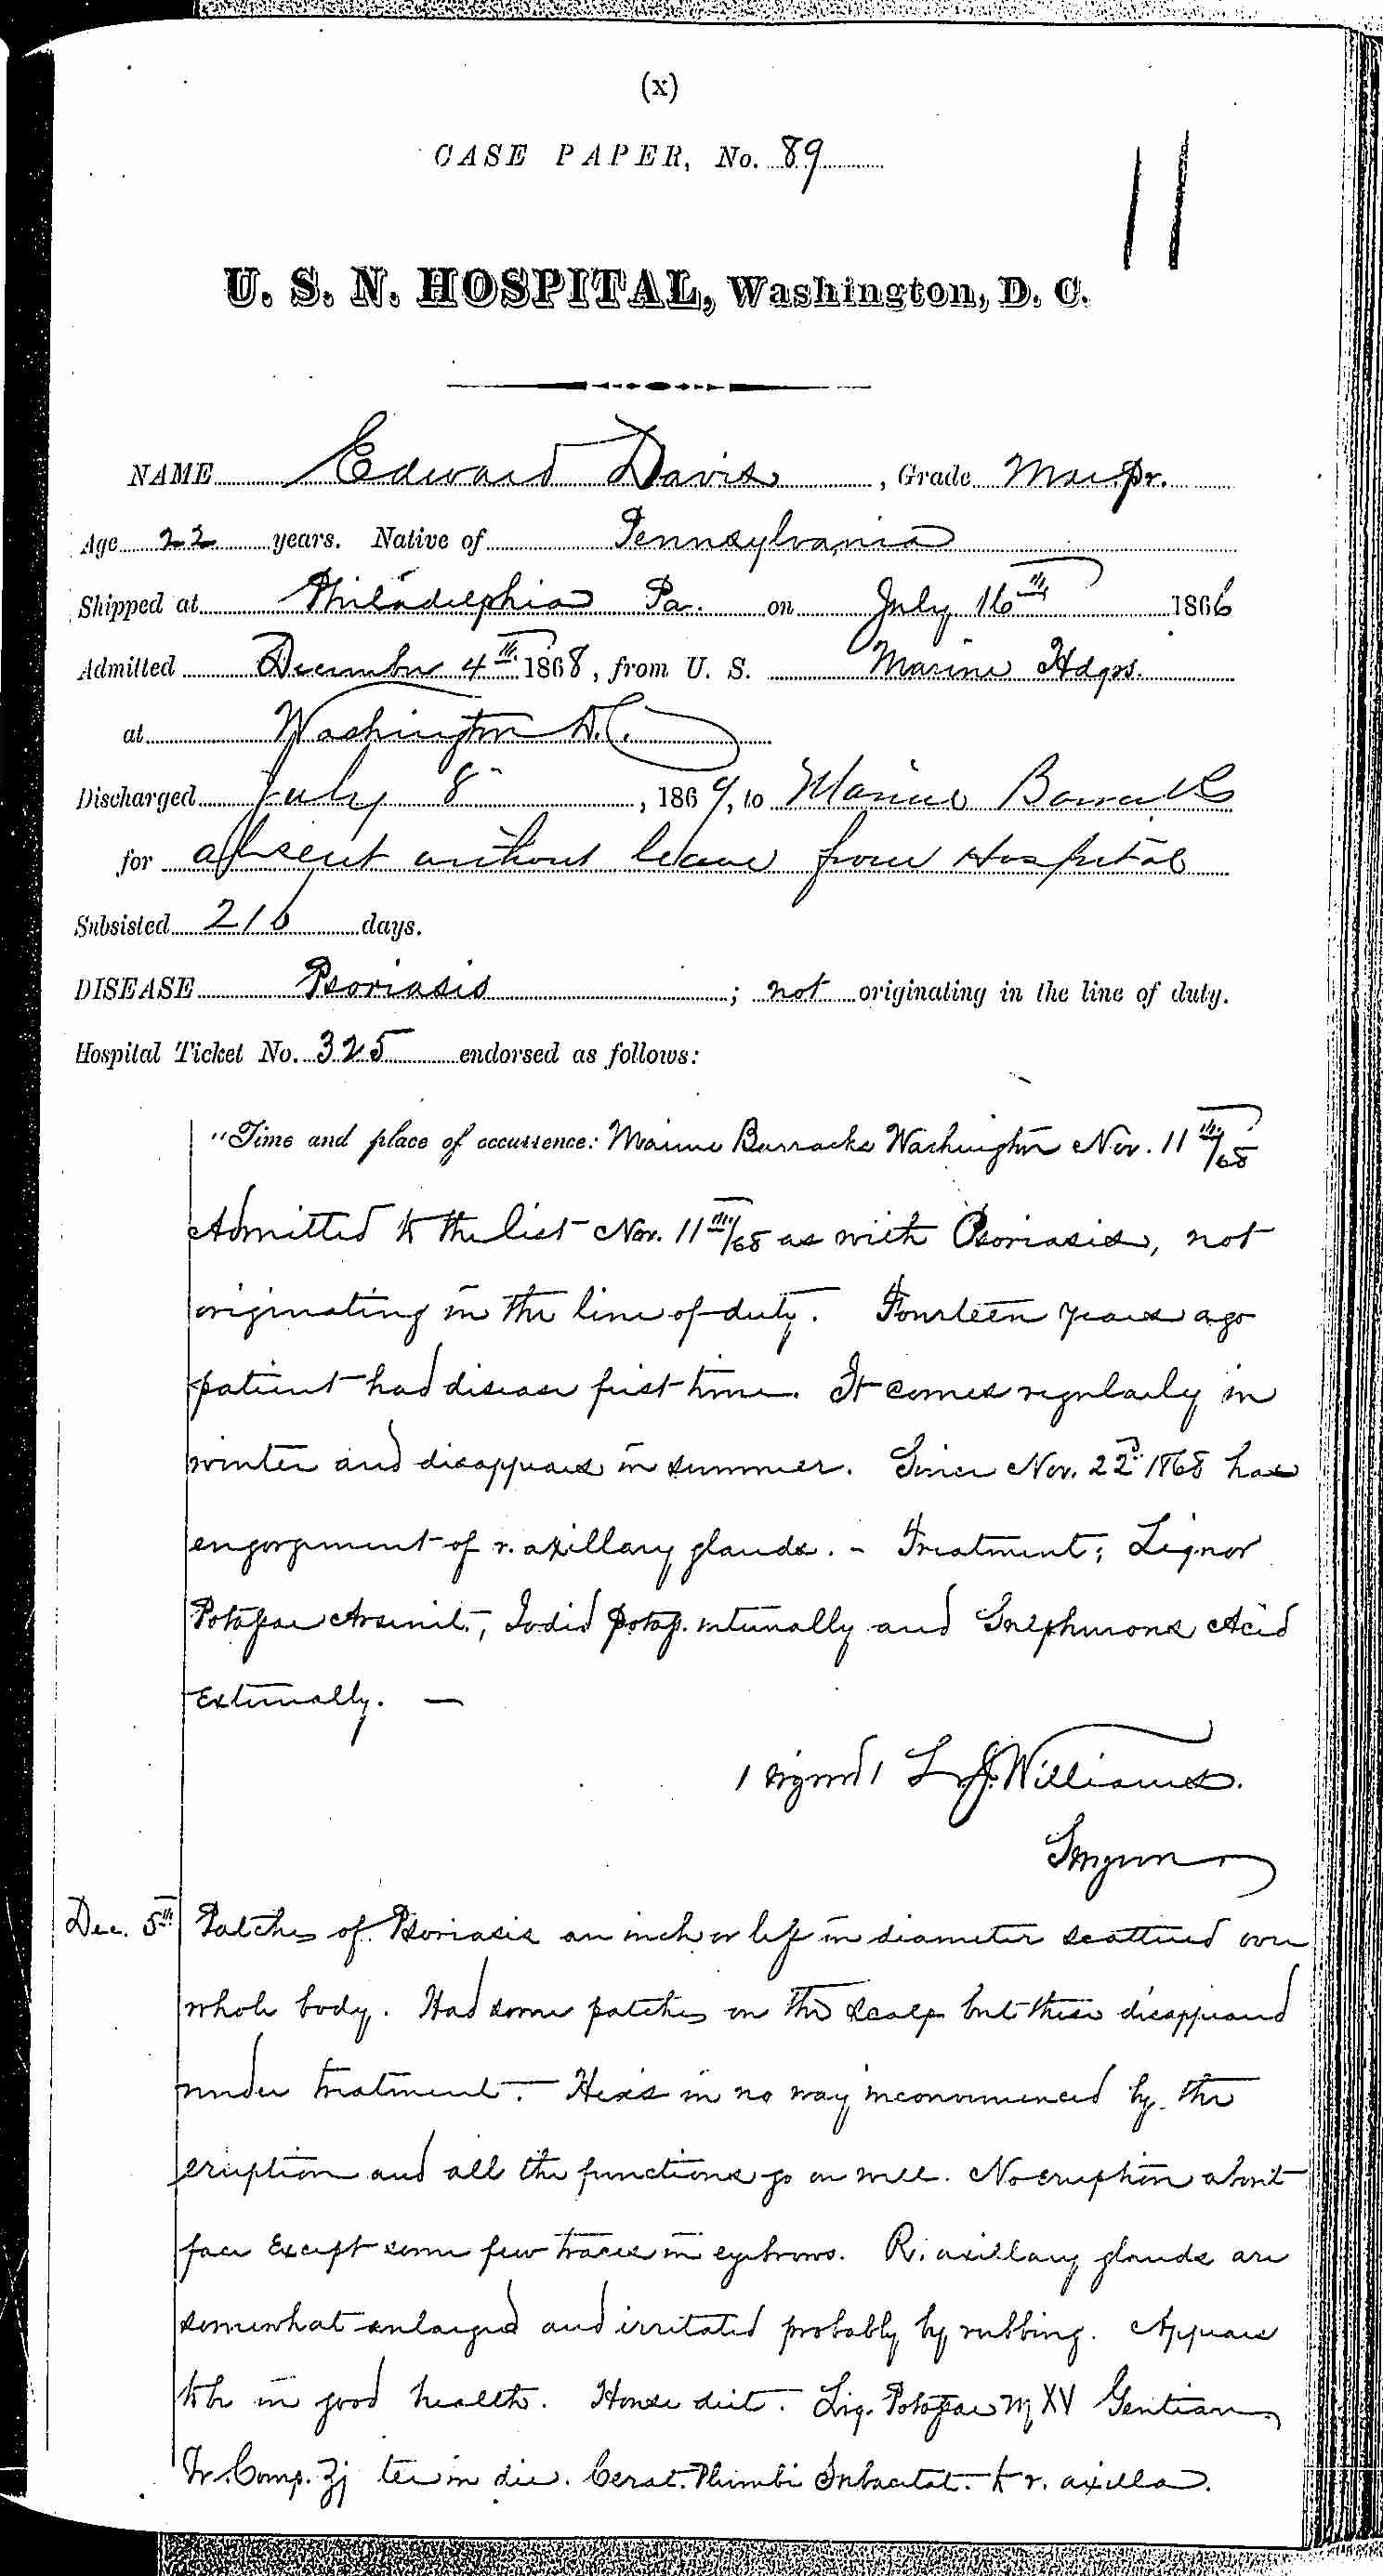 Entry for Edward Davis (page 1 of 6) in the log Hospital Tickets and Case Papers - Naval Hospital - Washington, D.C. - 1868-69